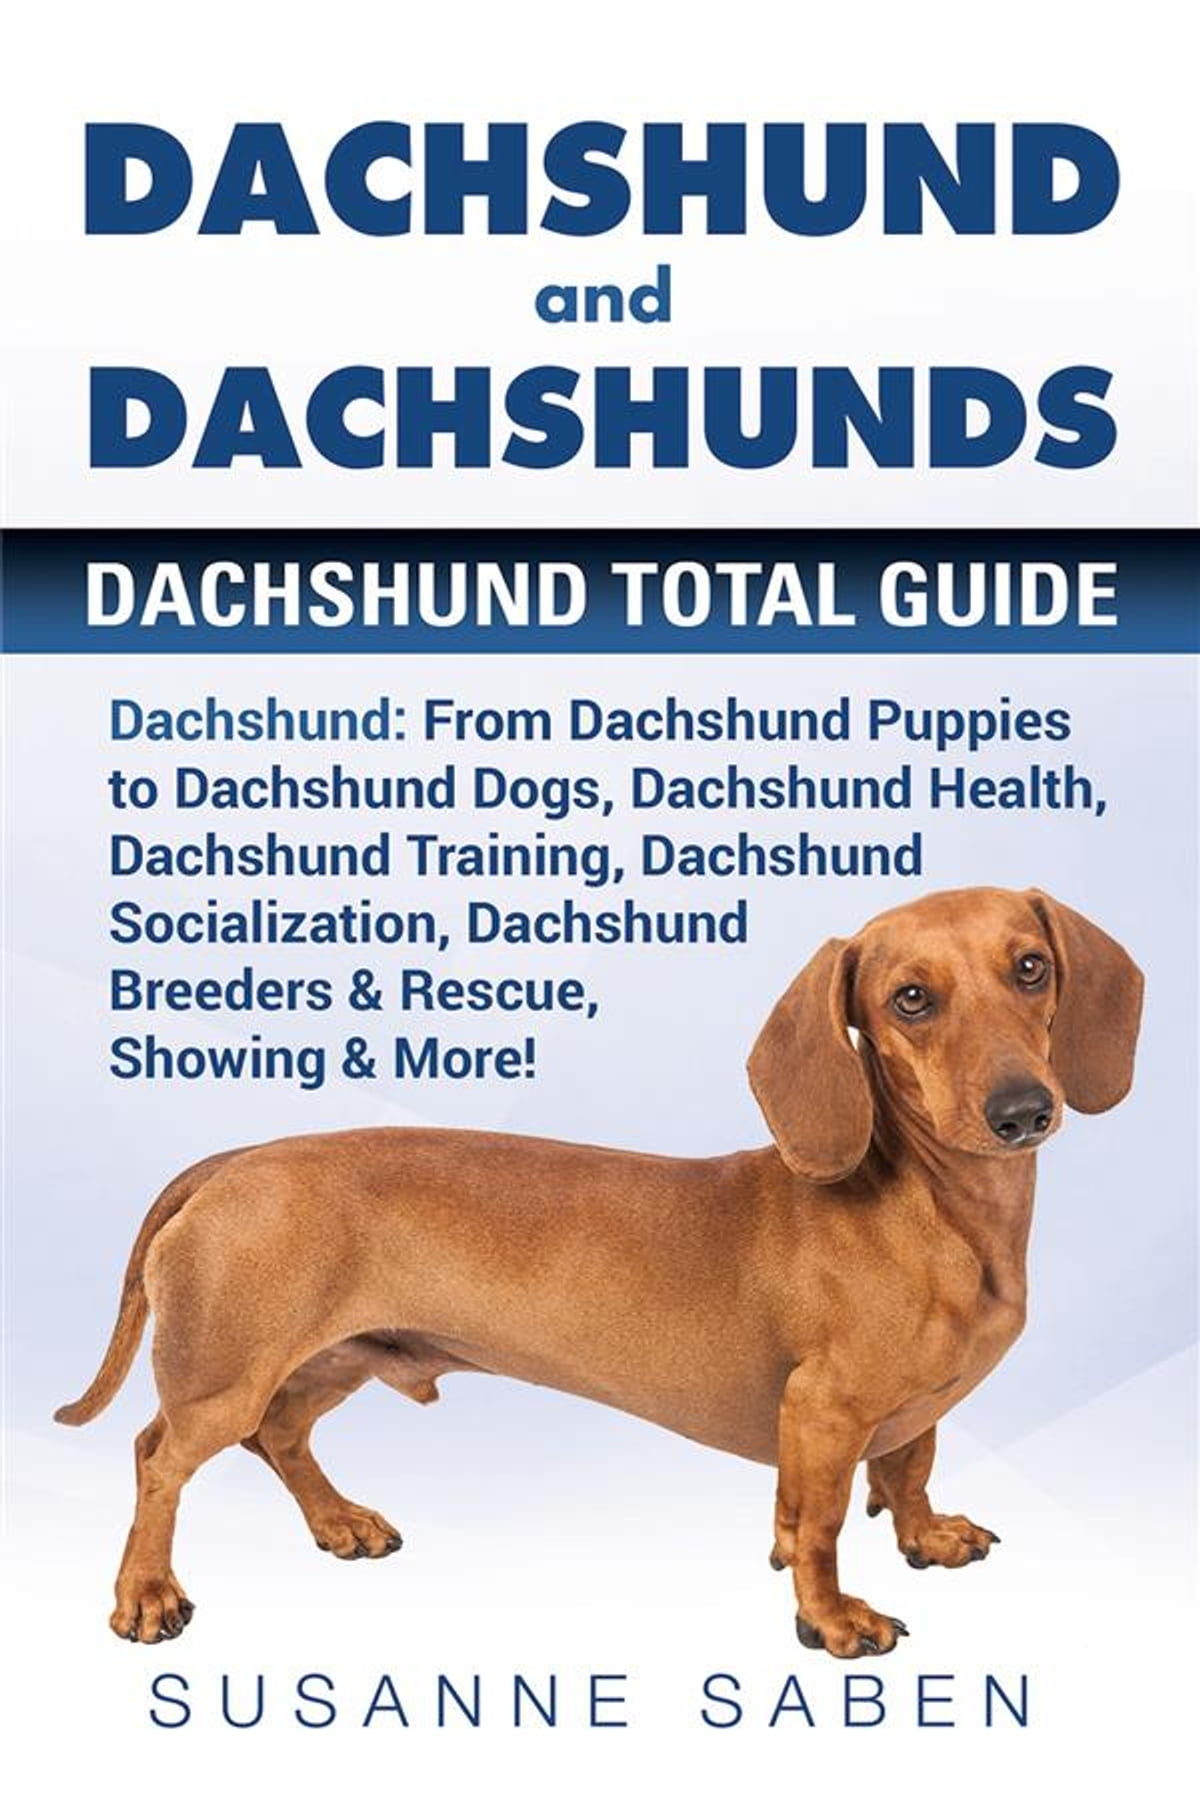 Dachshund And Dachshunds Ebook By Susanne Saben 9781911355809